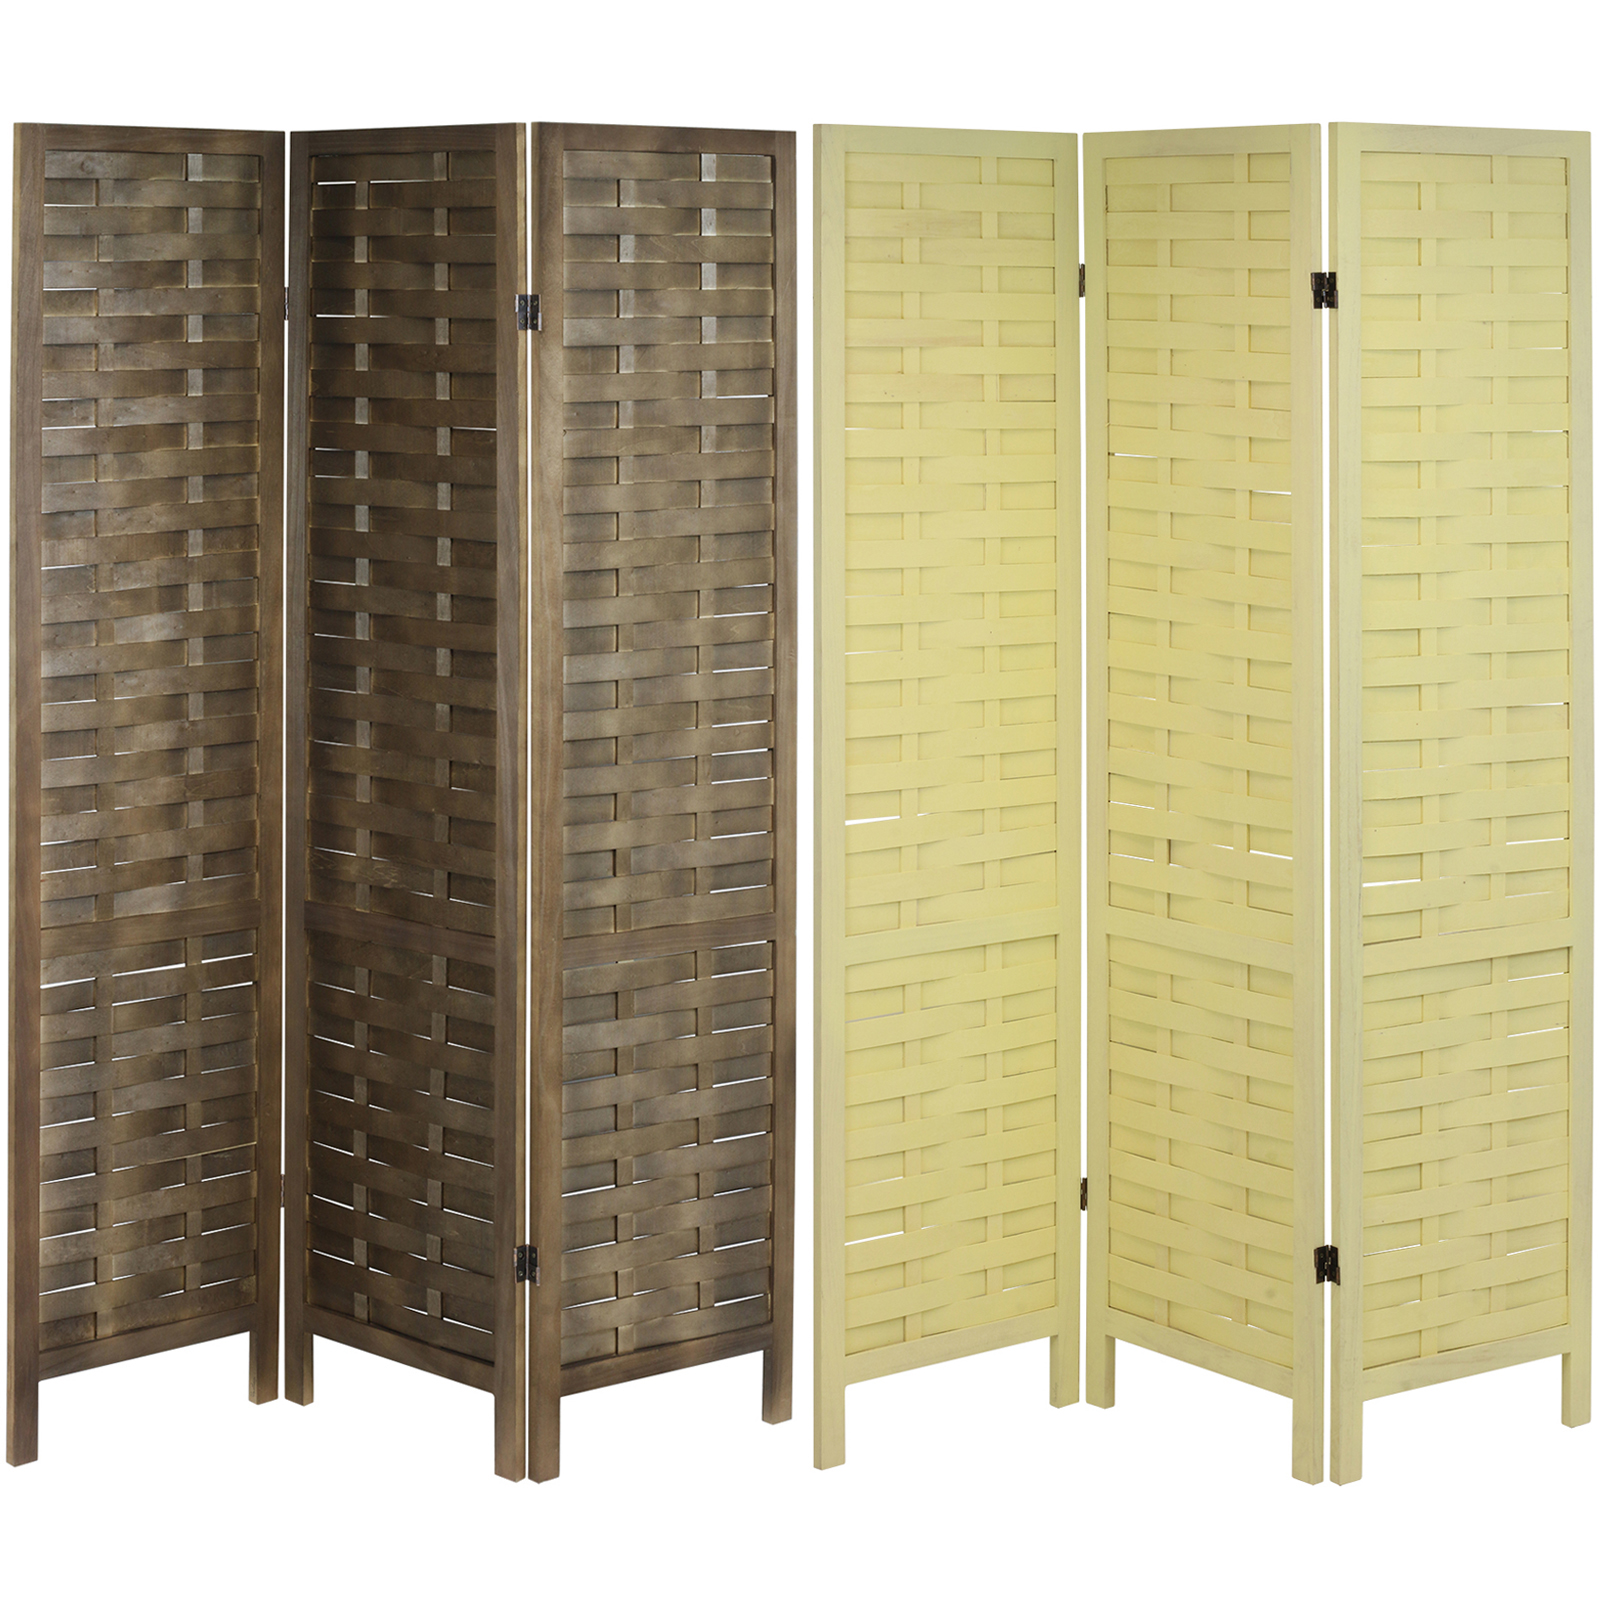 dividers that epic separator your home ideas divider will room to style add contemporary